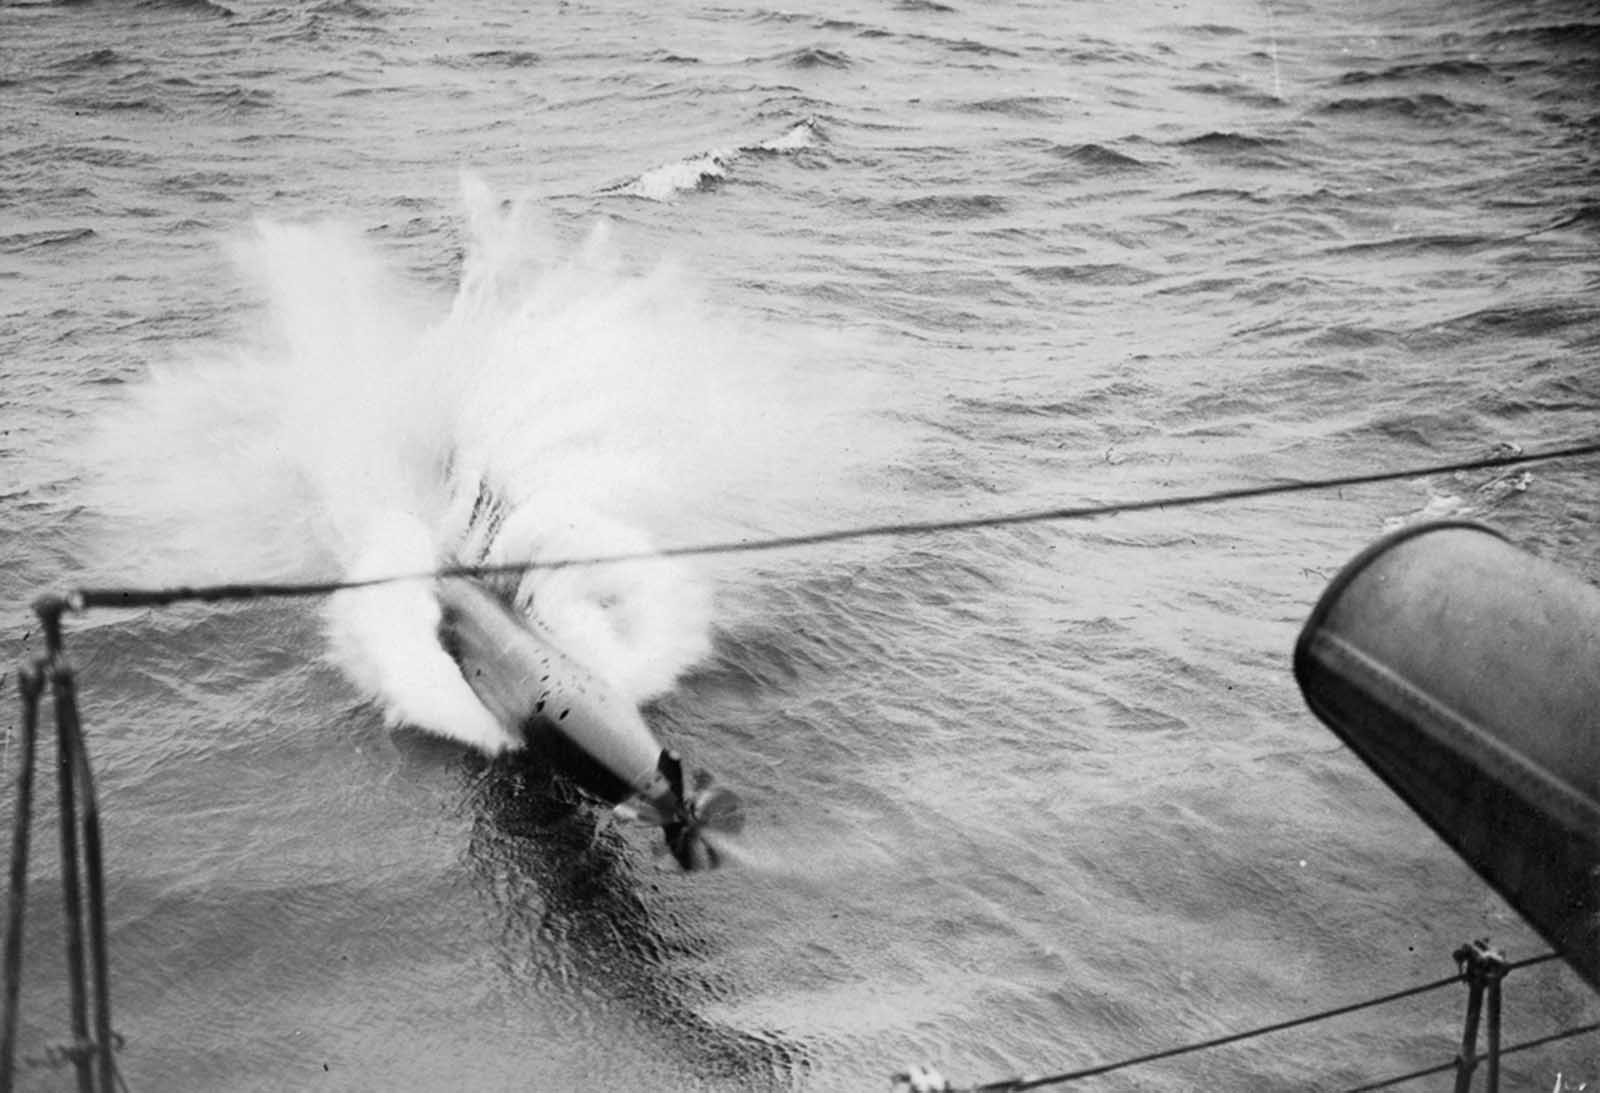 Launching a torpedo, British Royal Navy, 1917.